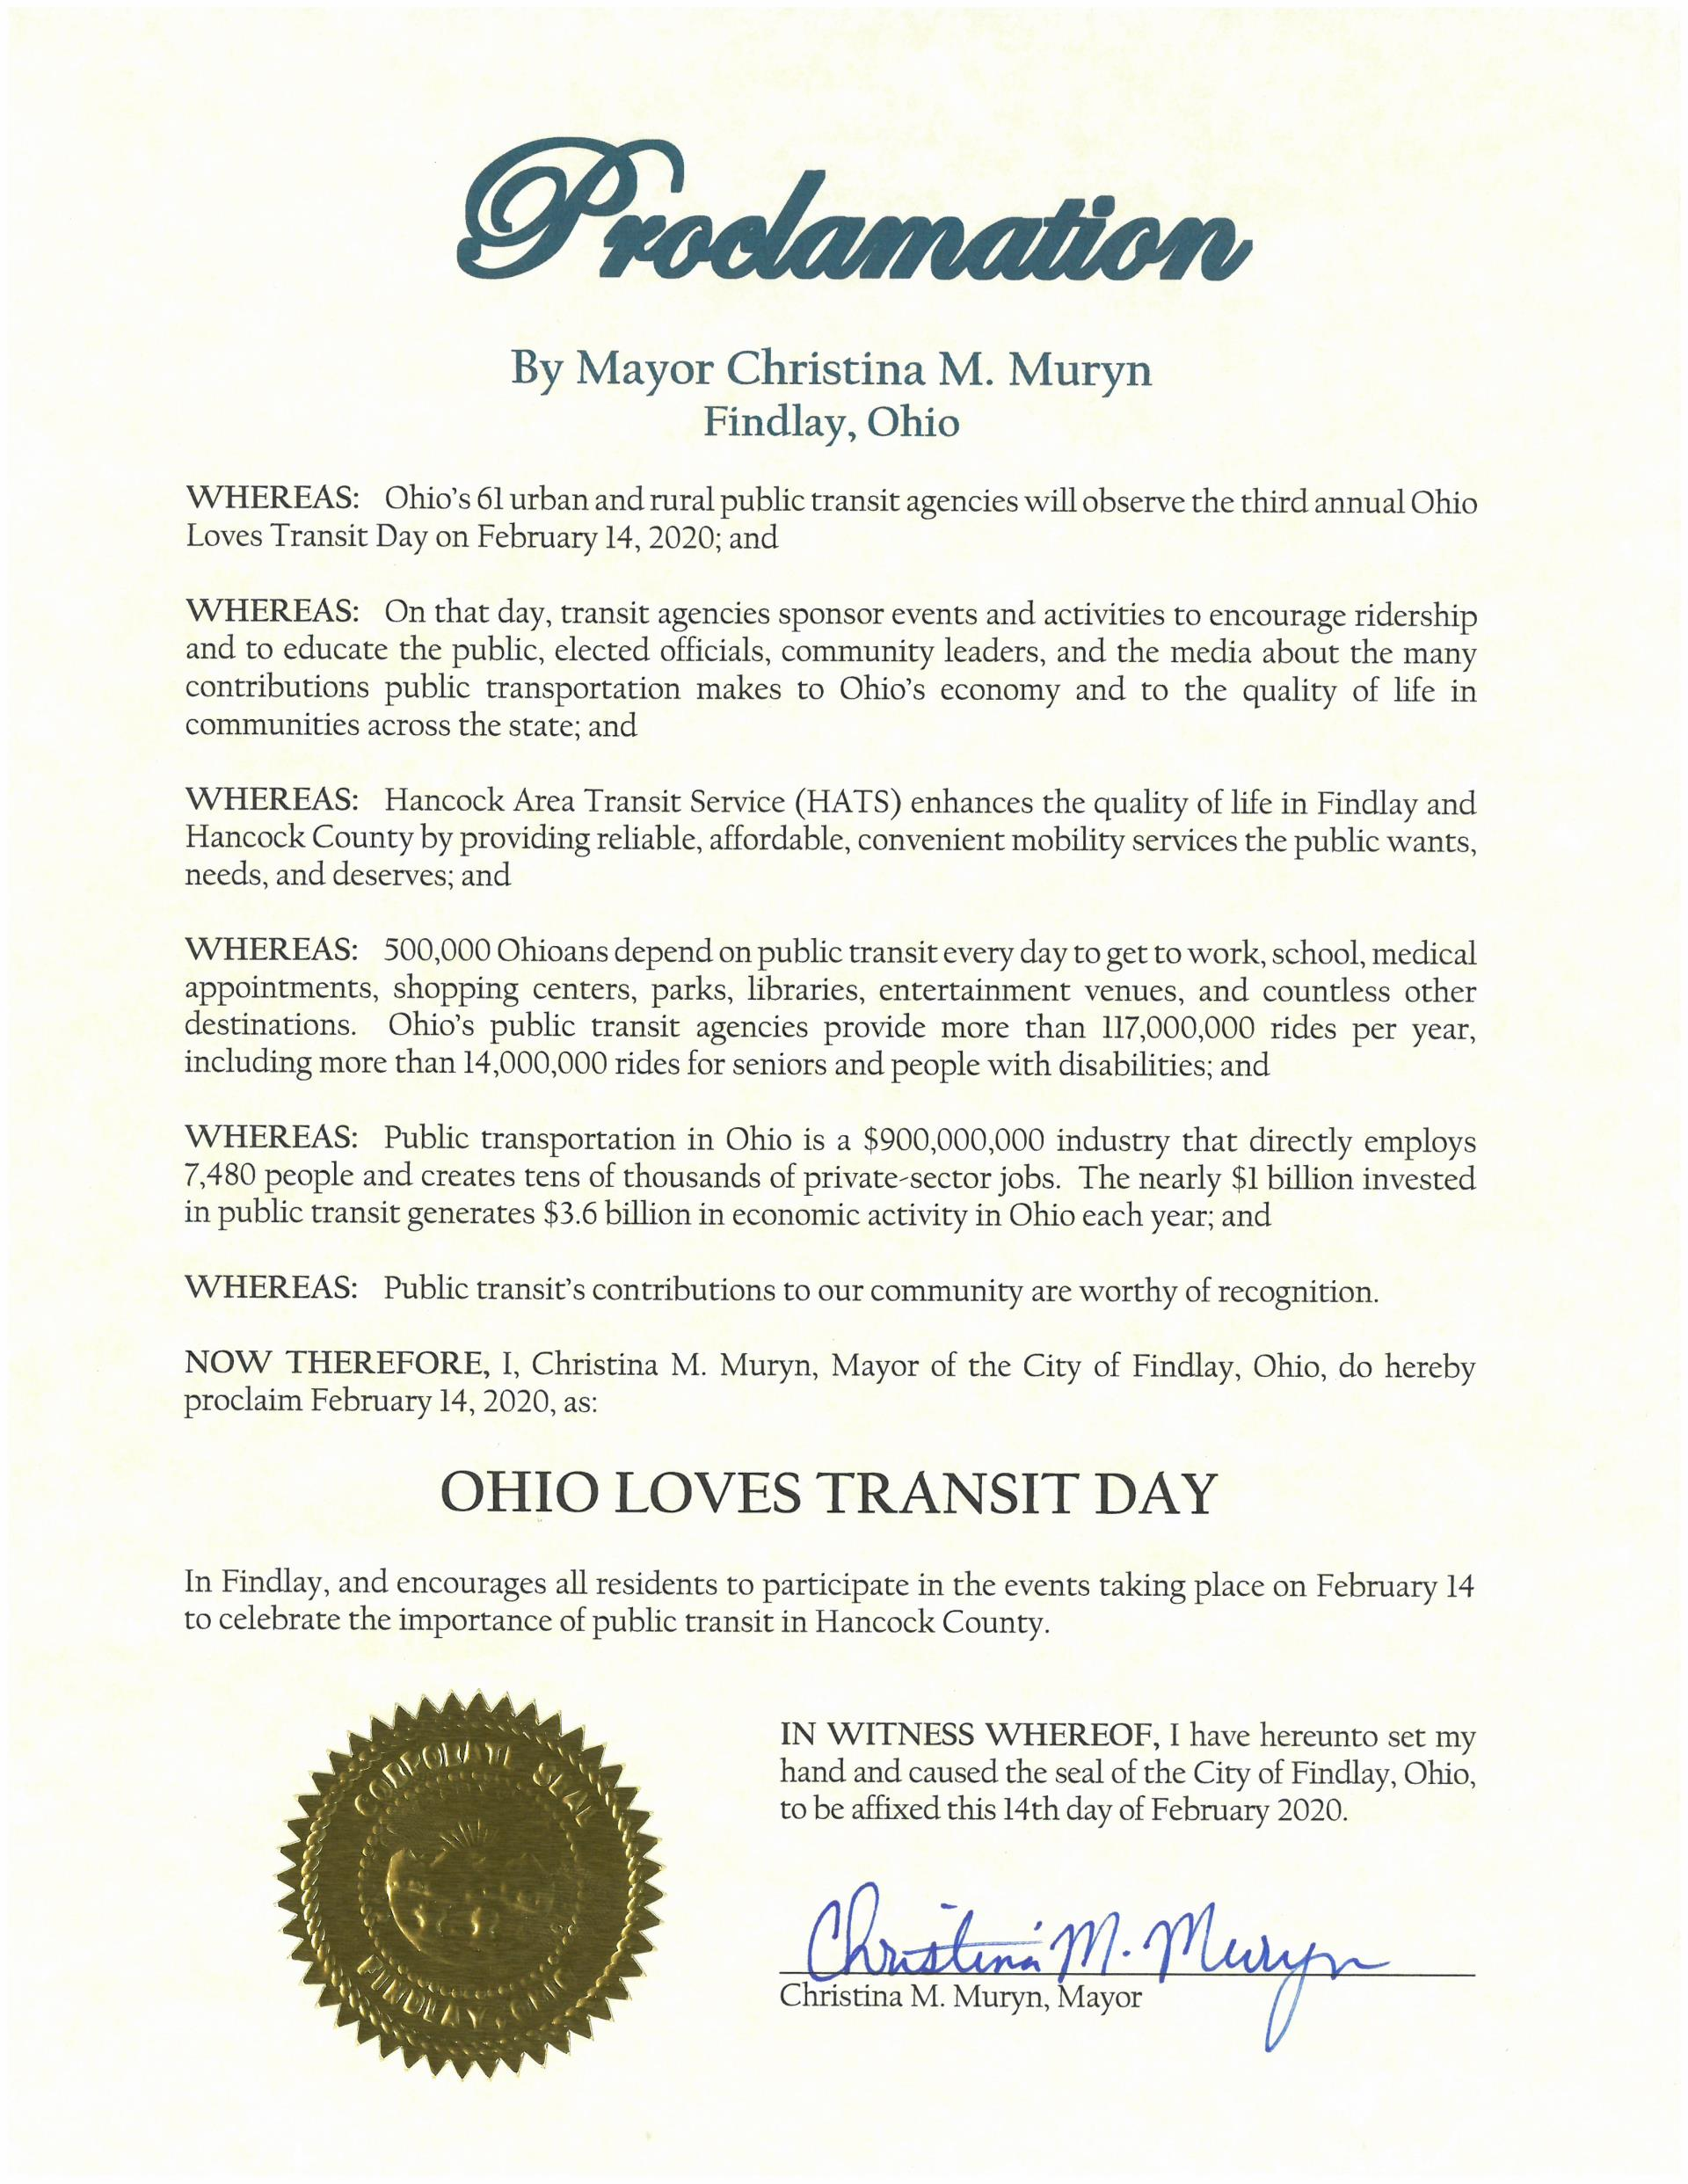 2020.02.14.Ohio Loves Transit Day Proclamation